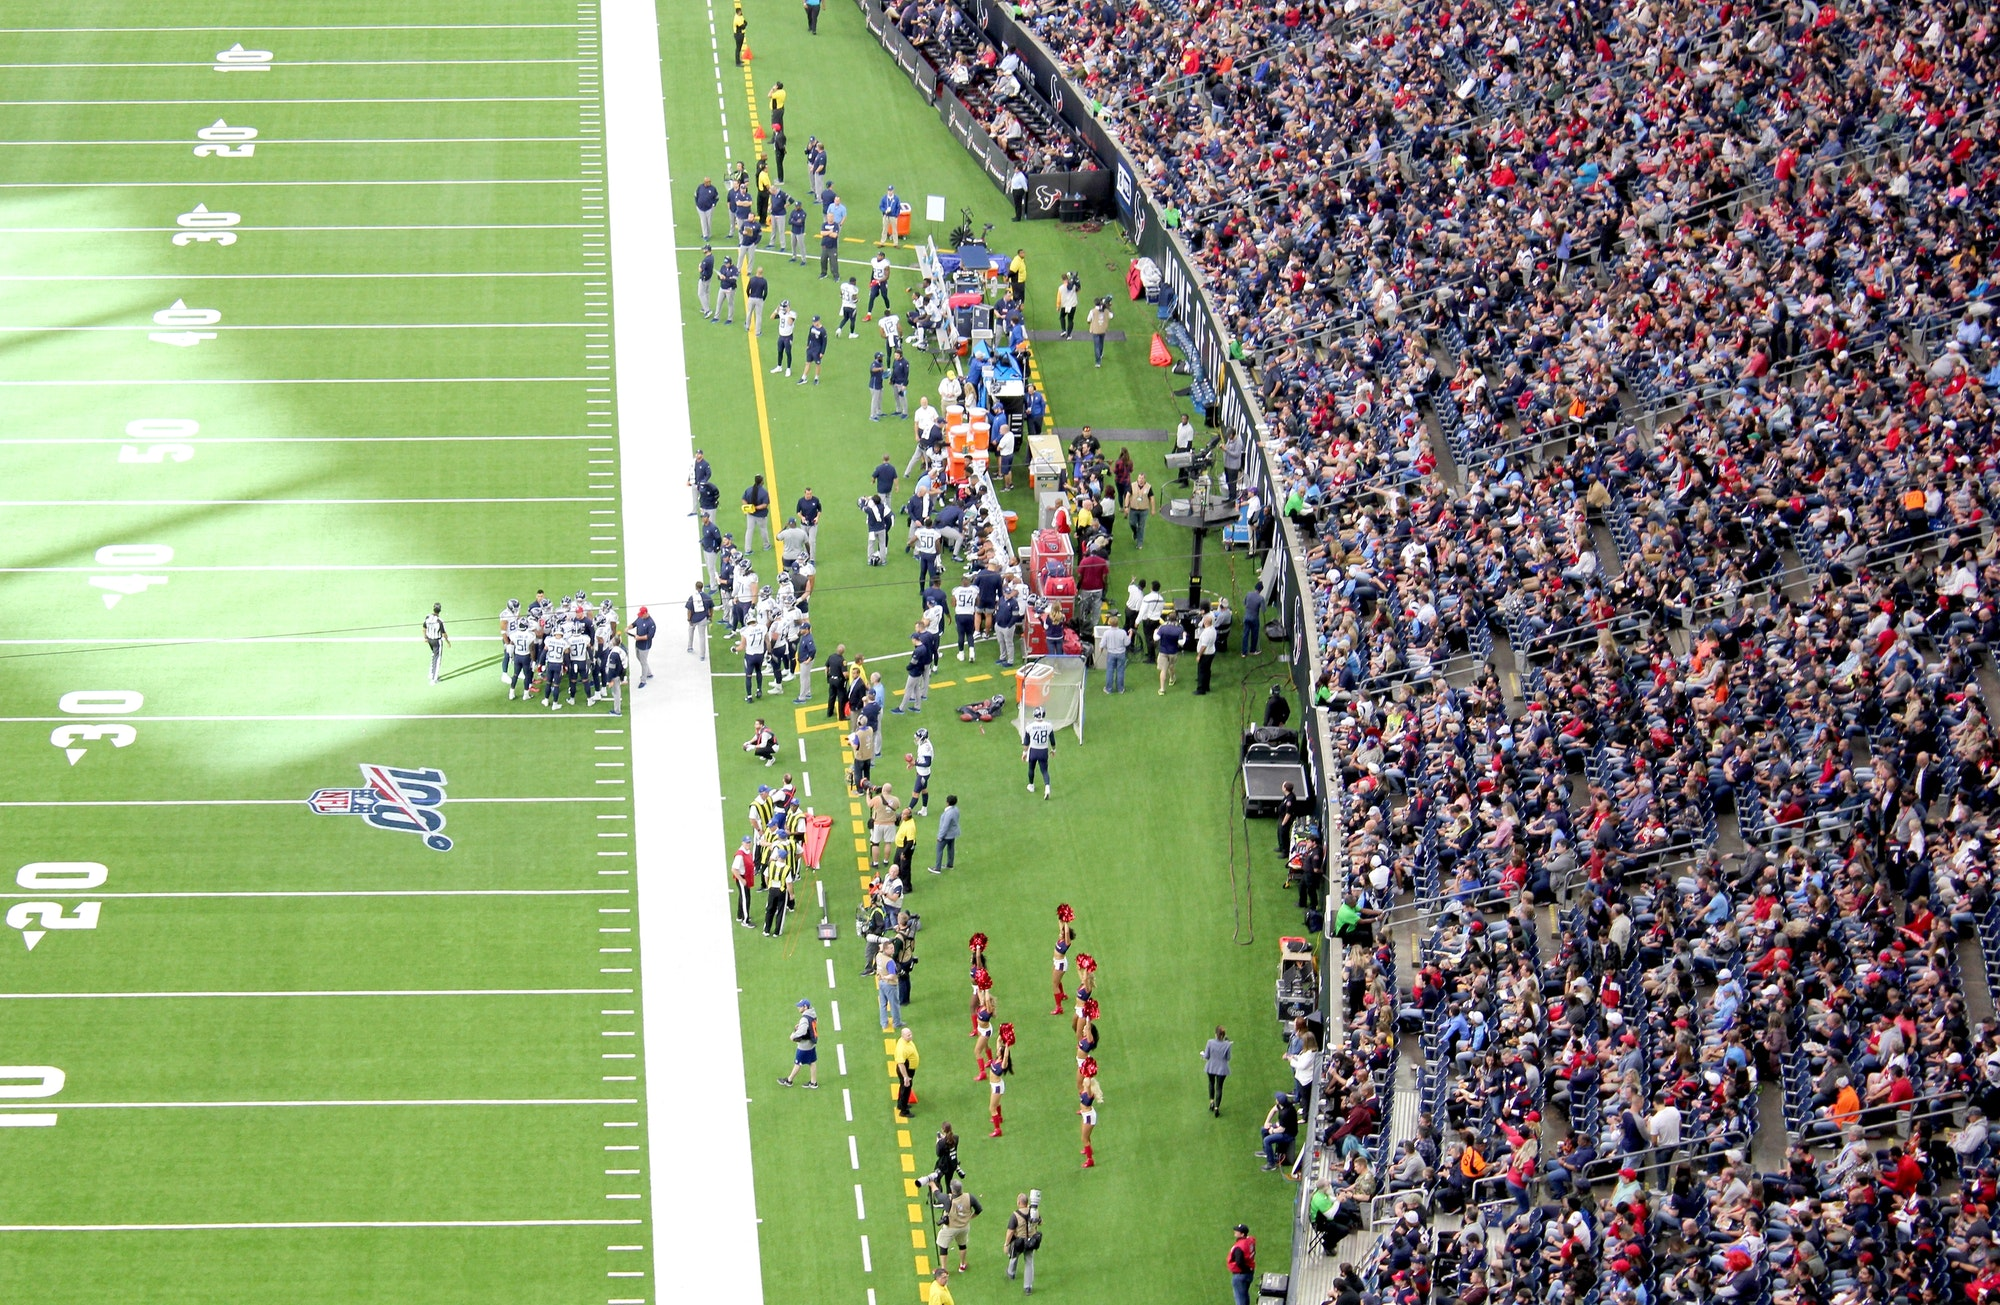 An audience of sports fans watching an NFL football game in a stadium